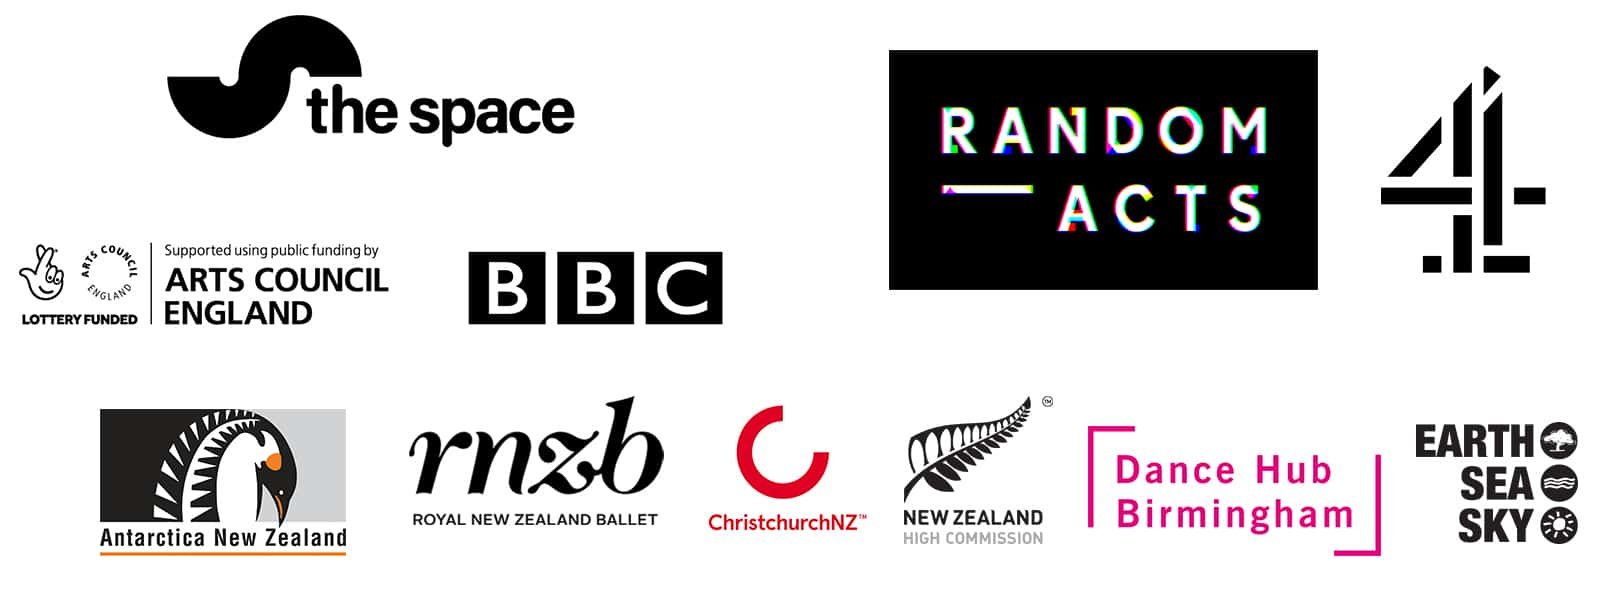 Sponsor logos; The Space, BBC, Arts Council England, Randon Acts, Channel 4, Royal New Zealand Ballet, New Zealand Hight Commission, DanceXchange, ChristchurchNZ, Earth Sea Sky & Antarctica New Zealand